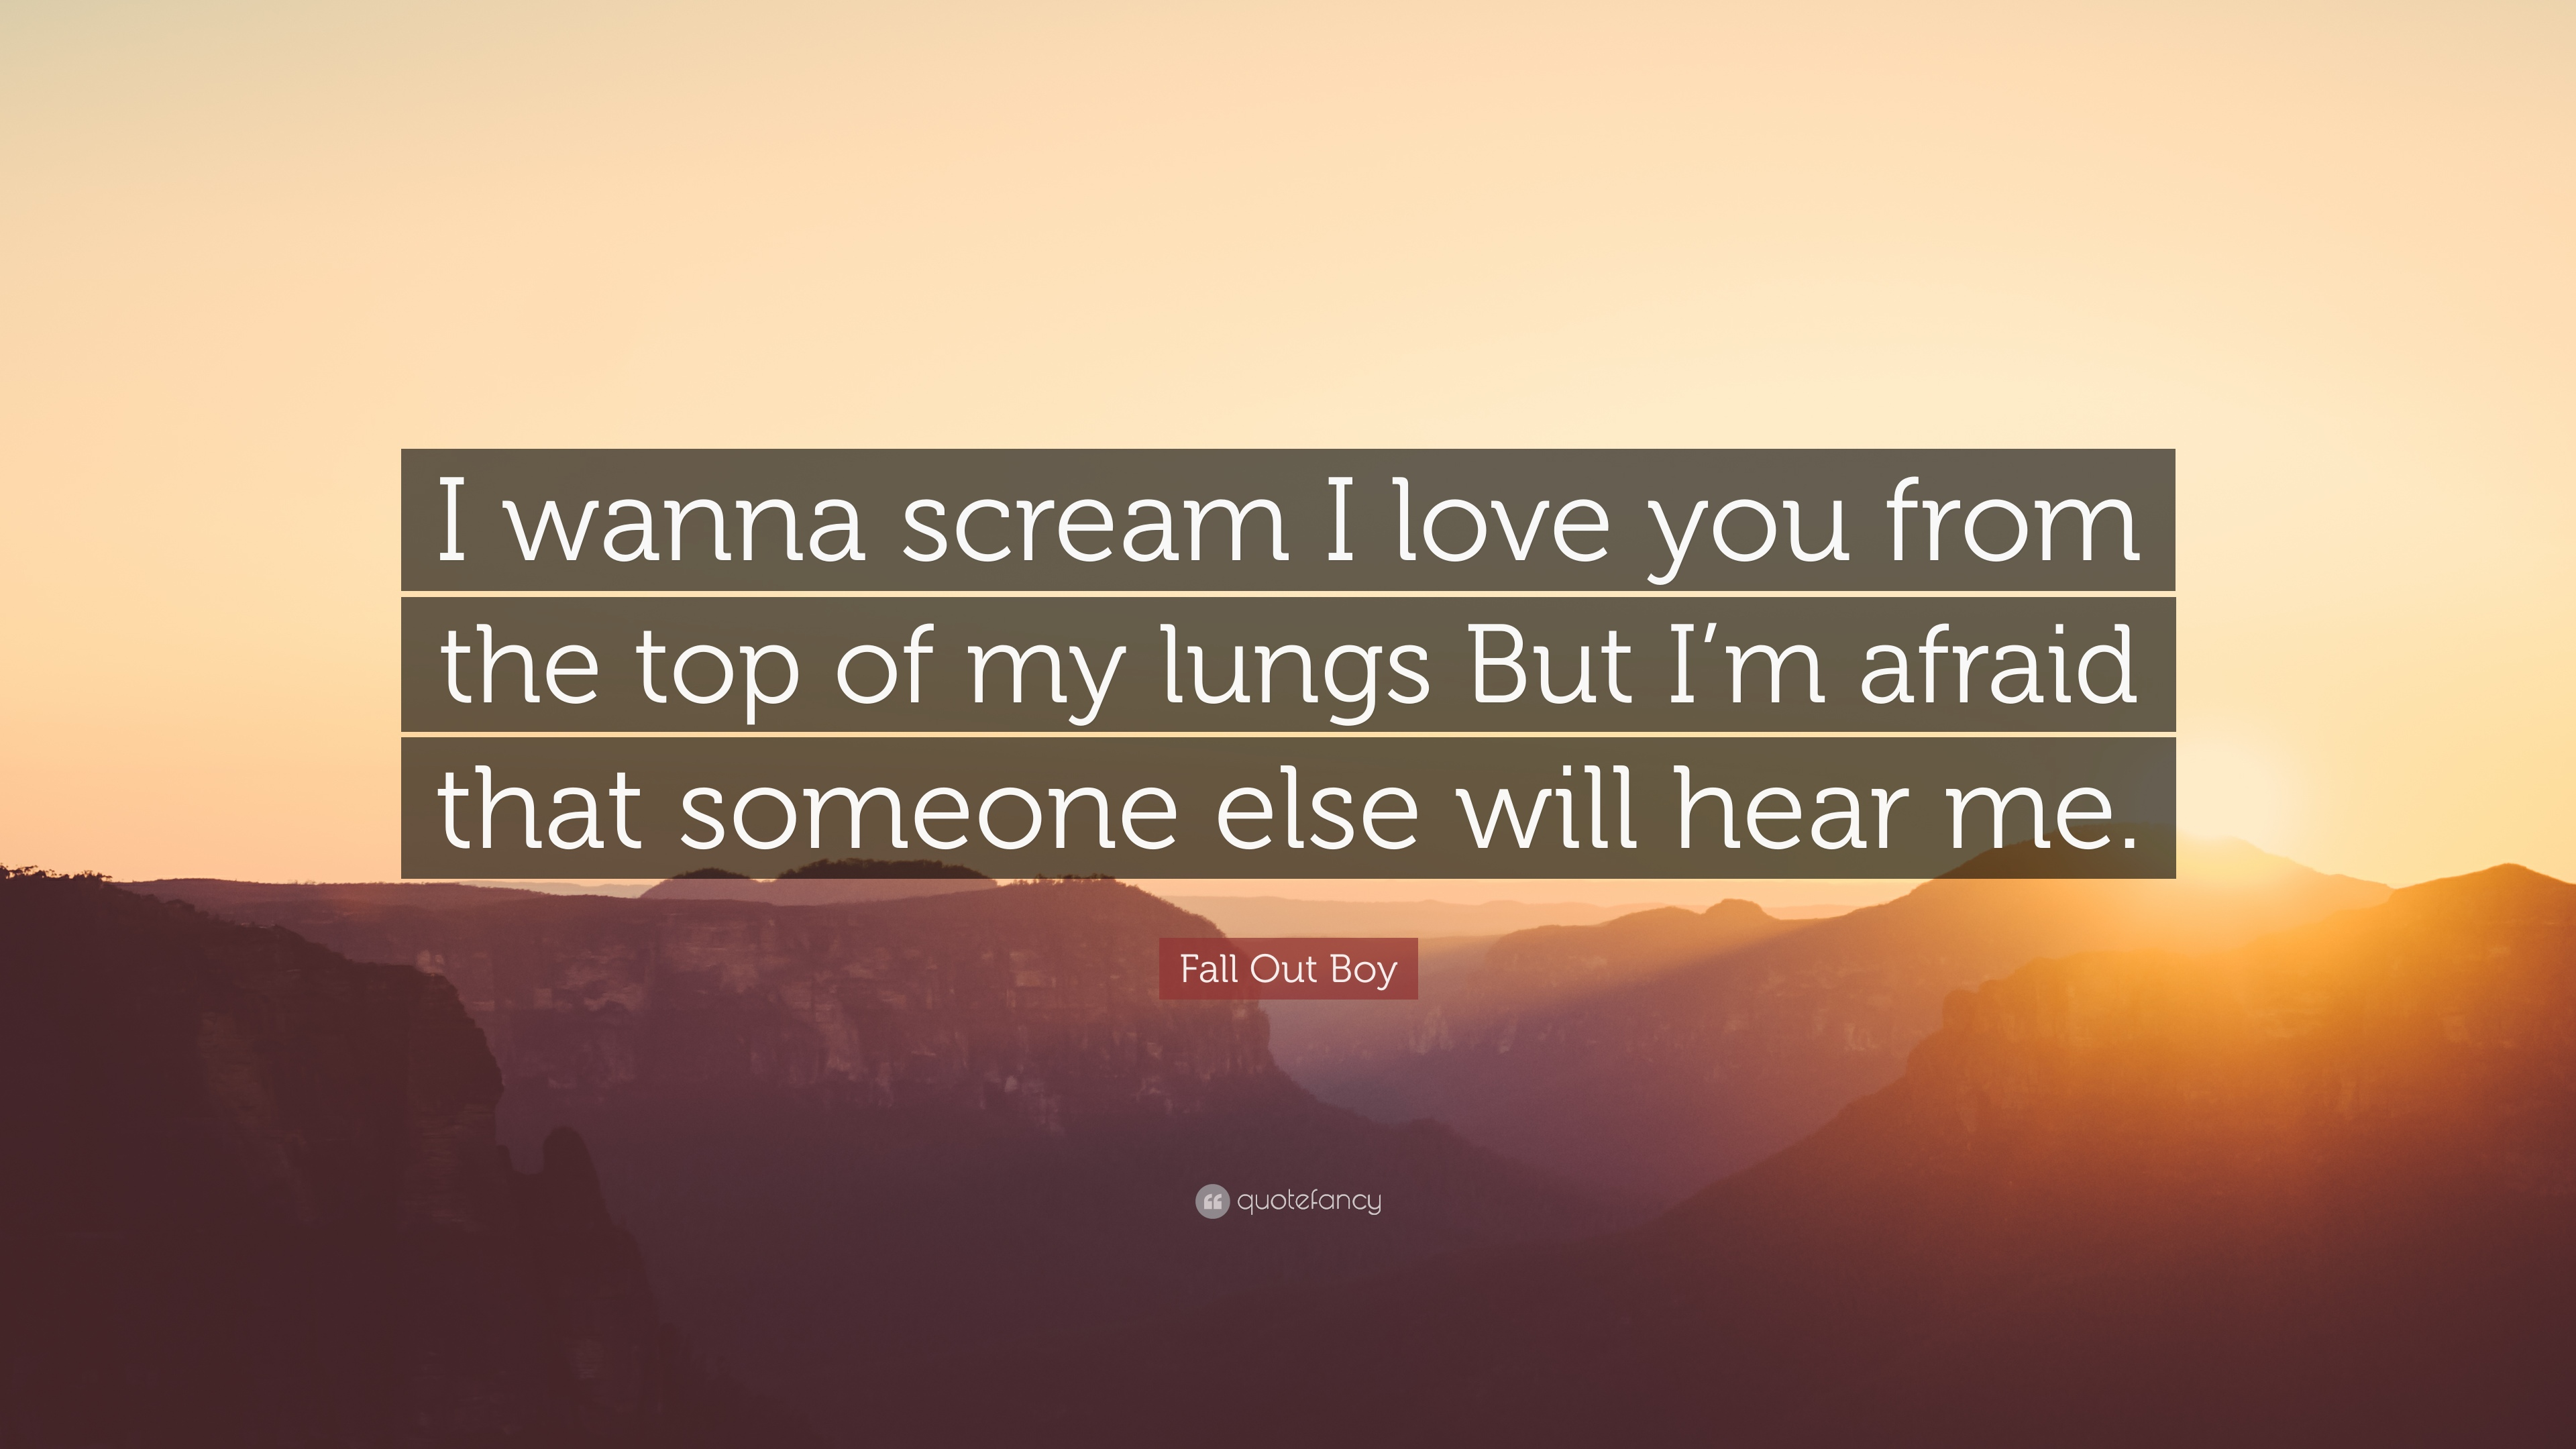 Marvelous Fall Out Boy Quote: U201cI Wanna Scream I Love You From The Top Of